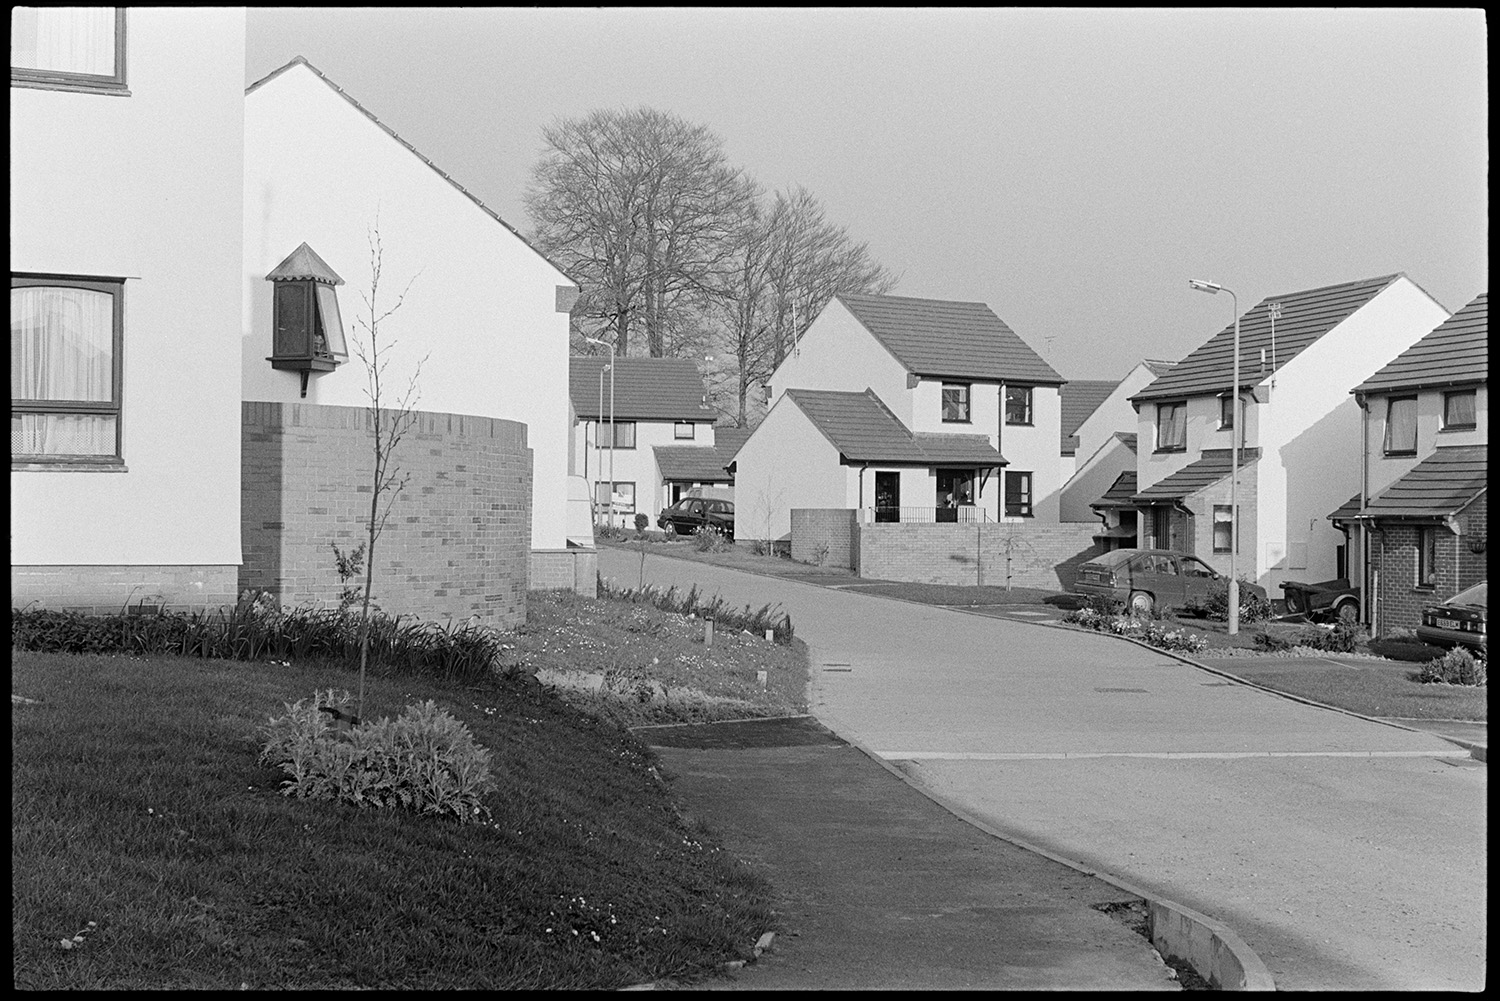 New housing estate. <br /> [Houses on a new housing estate in South Molton. Gardens and parked cars are visible.]